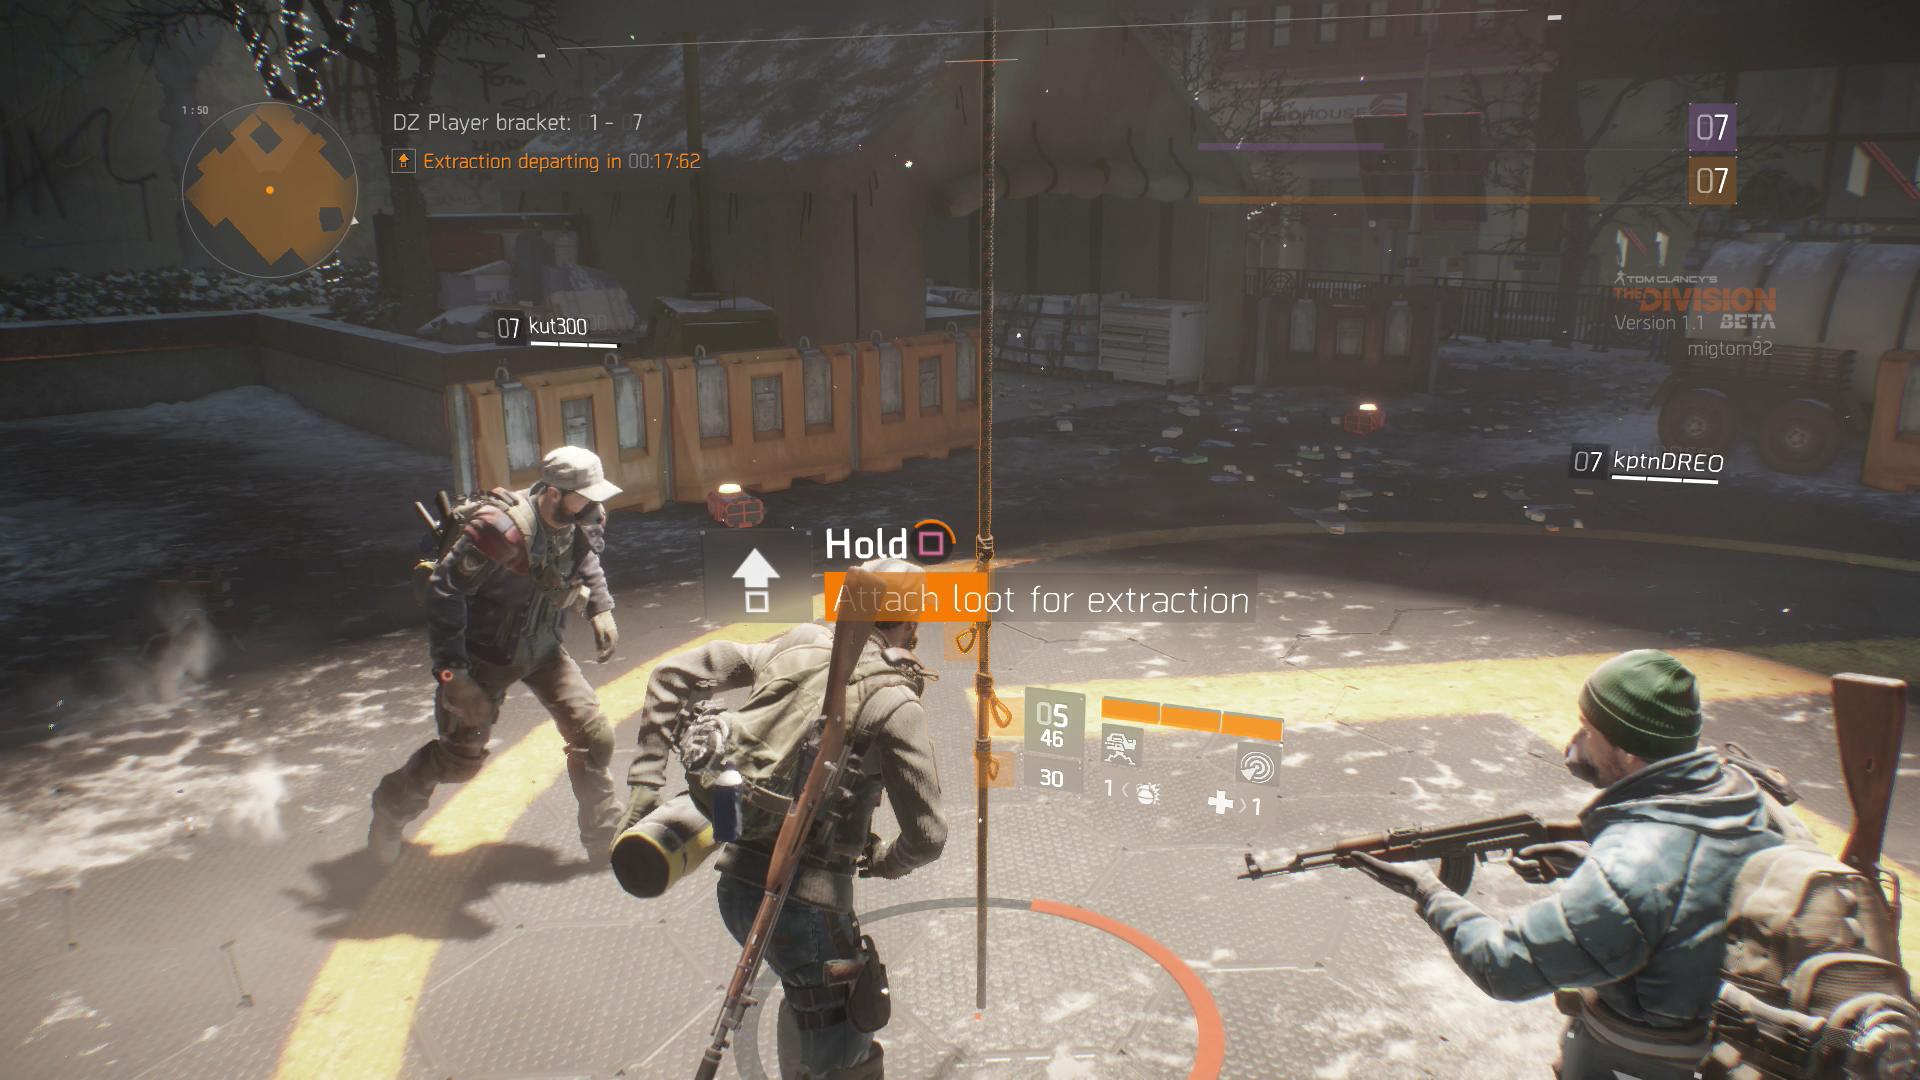 The Division Screen Shot 2016-02-23 05-33-03